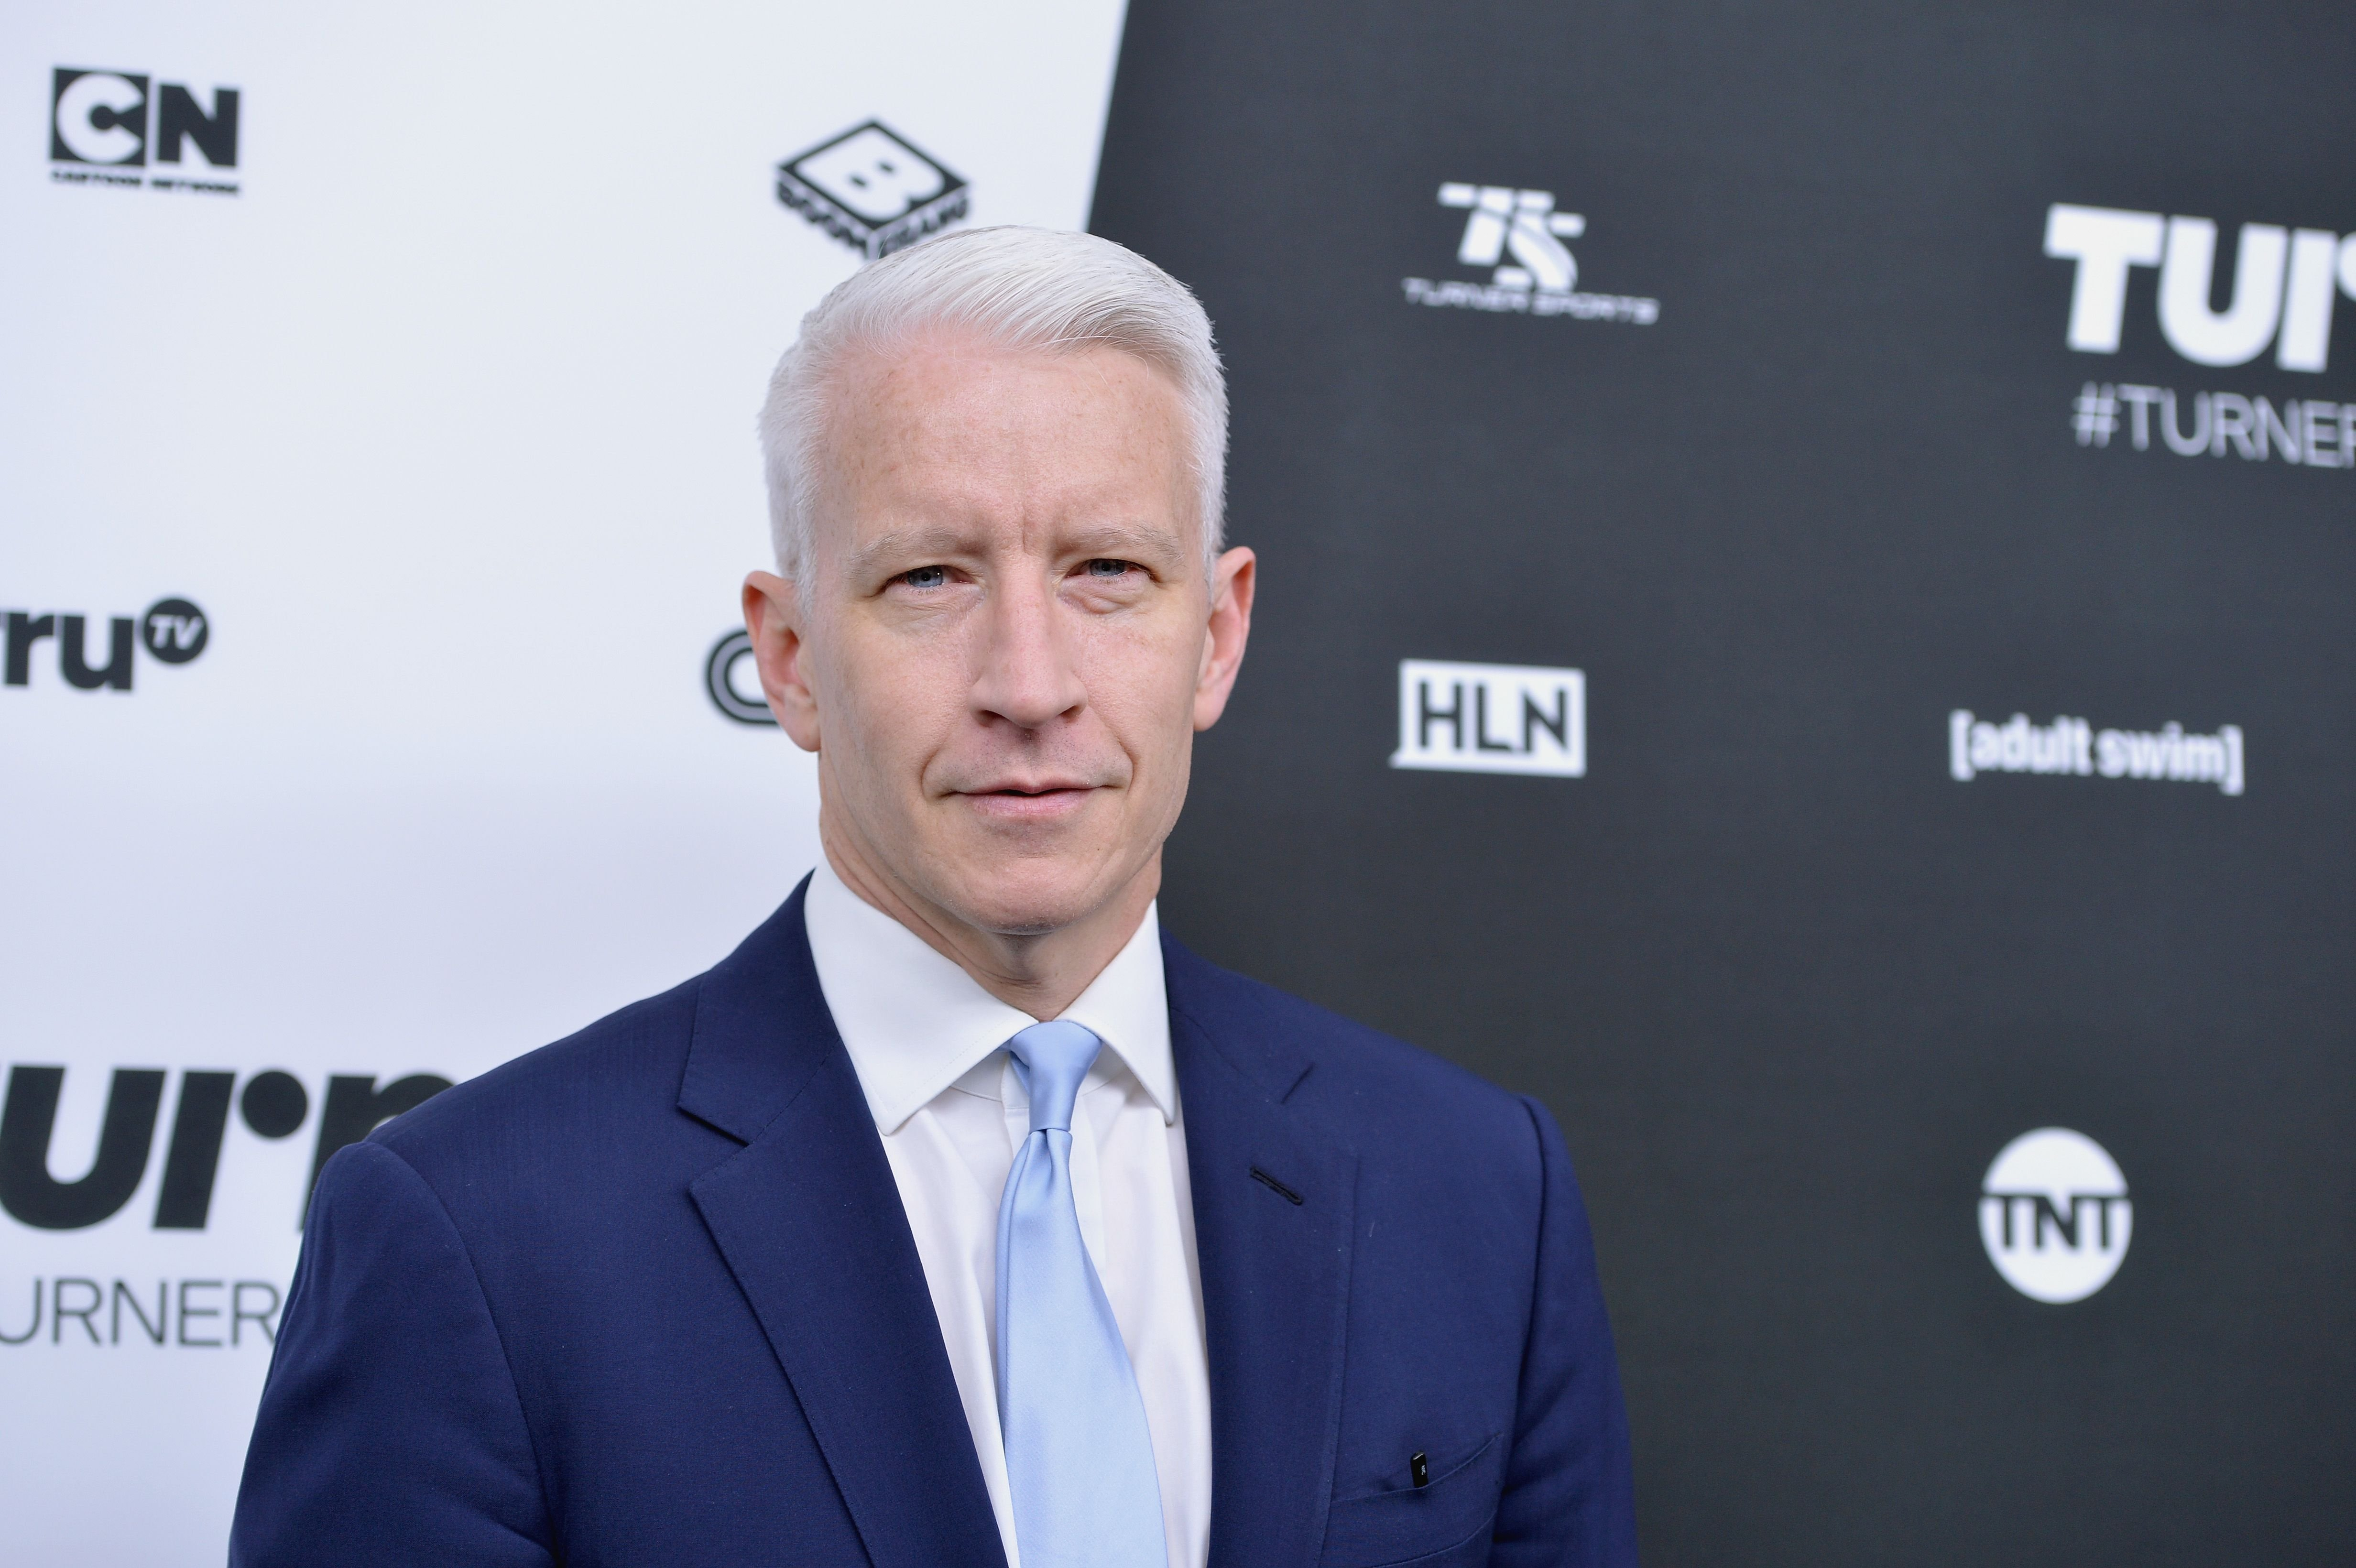 Journalist Anderson Cooper at the Turner Upfront 2016 at Nick & Stef's Steakhouse on May 18, 2016 | Photo: Getty Images